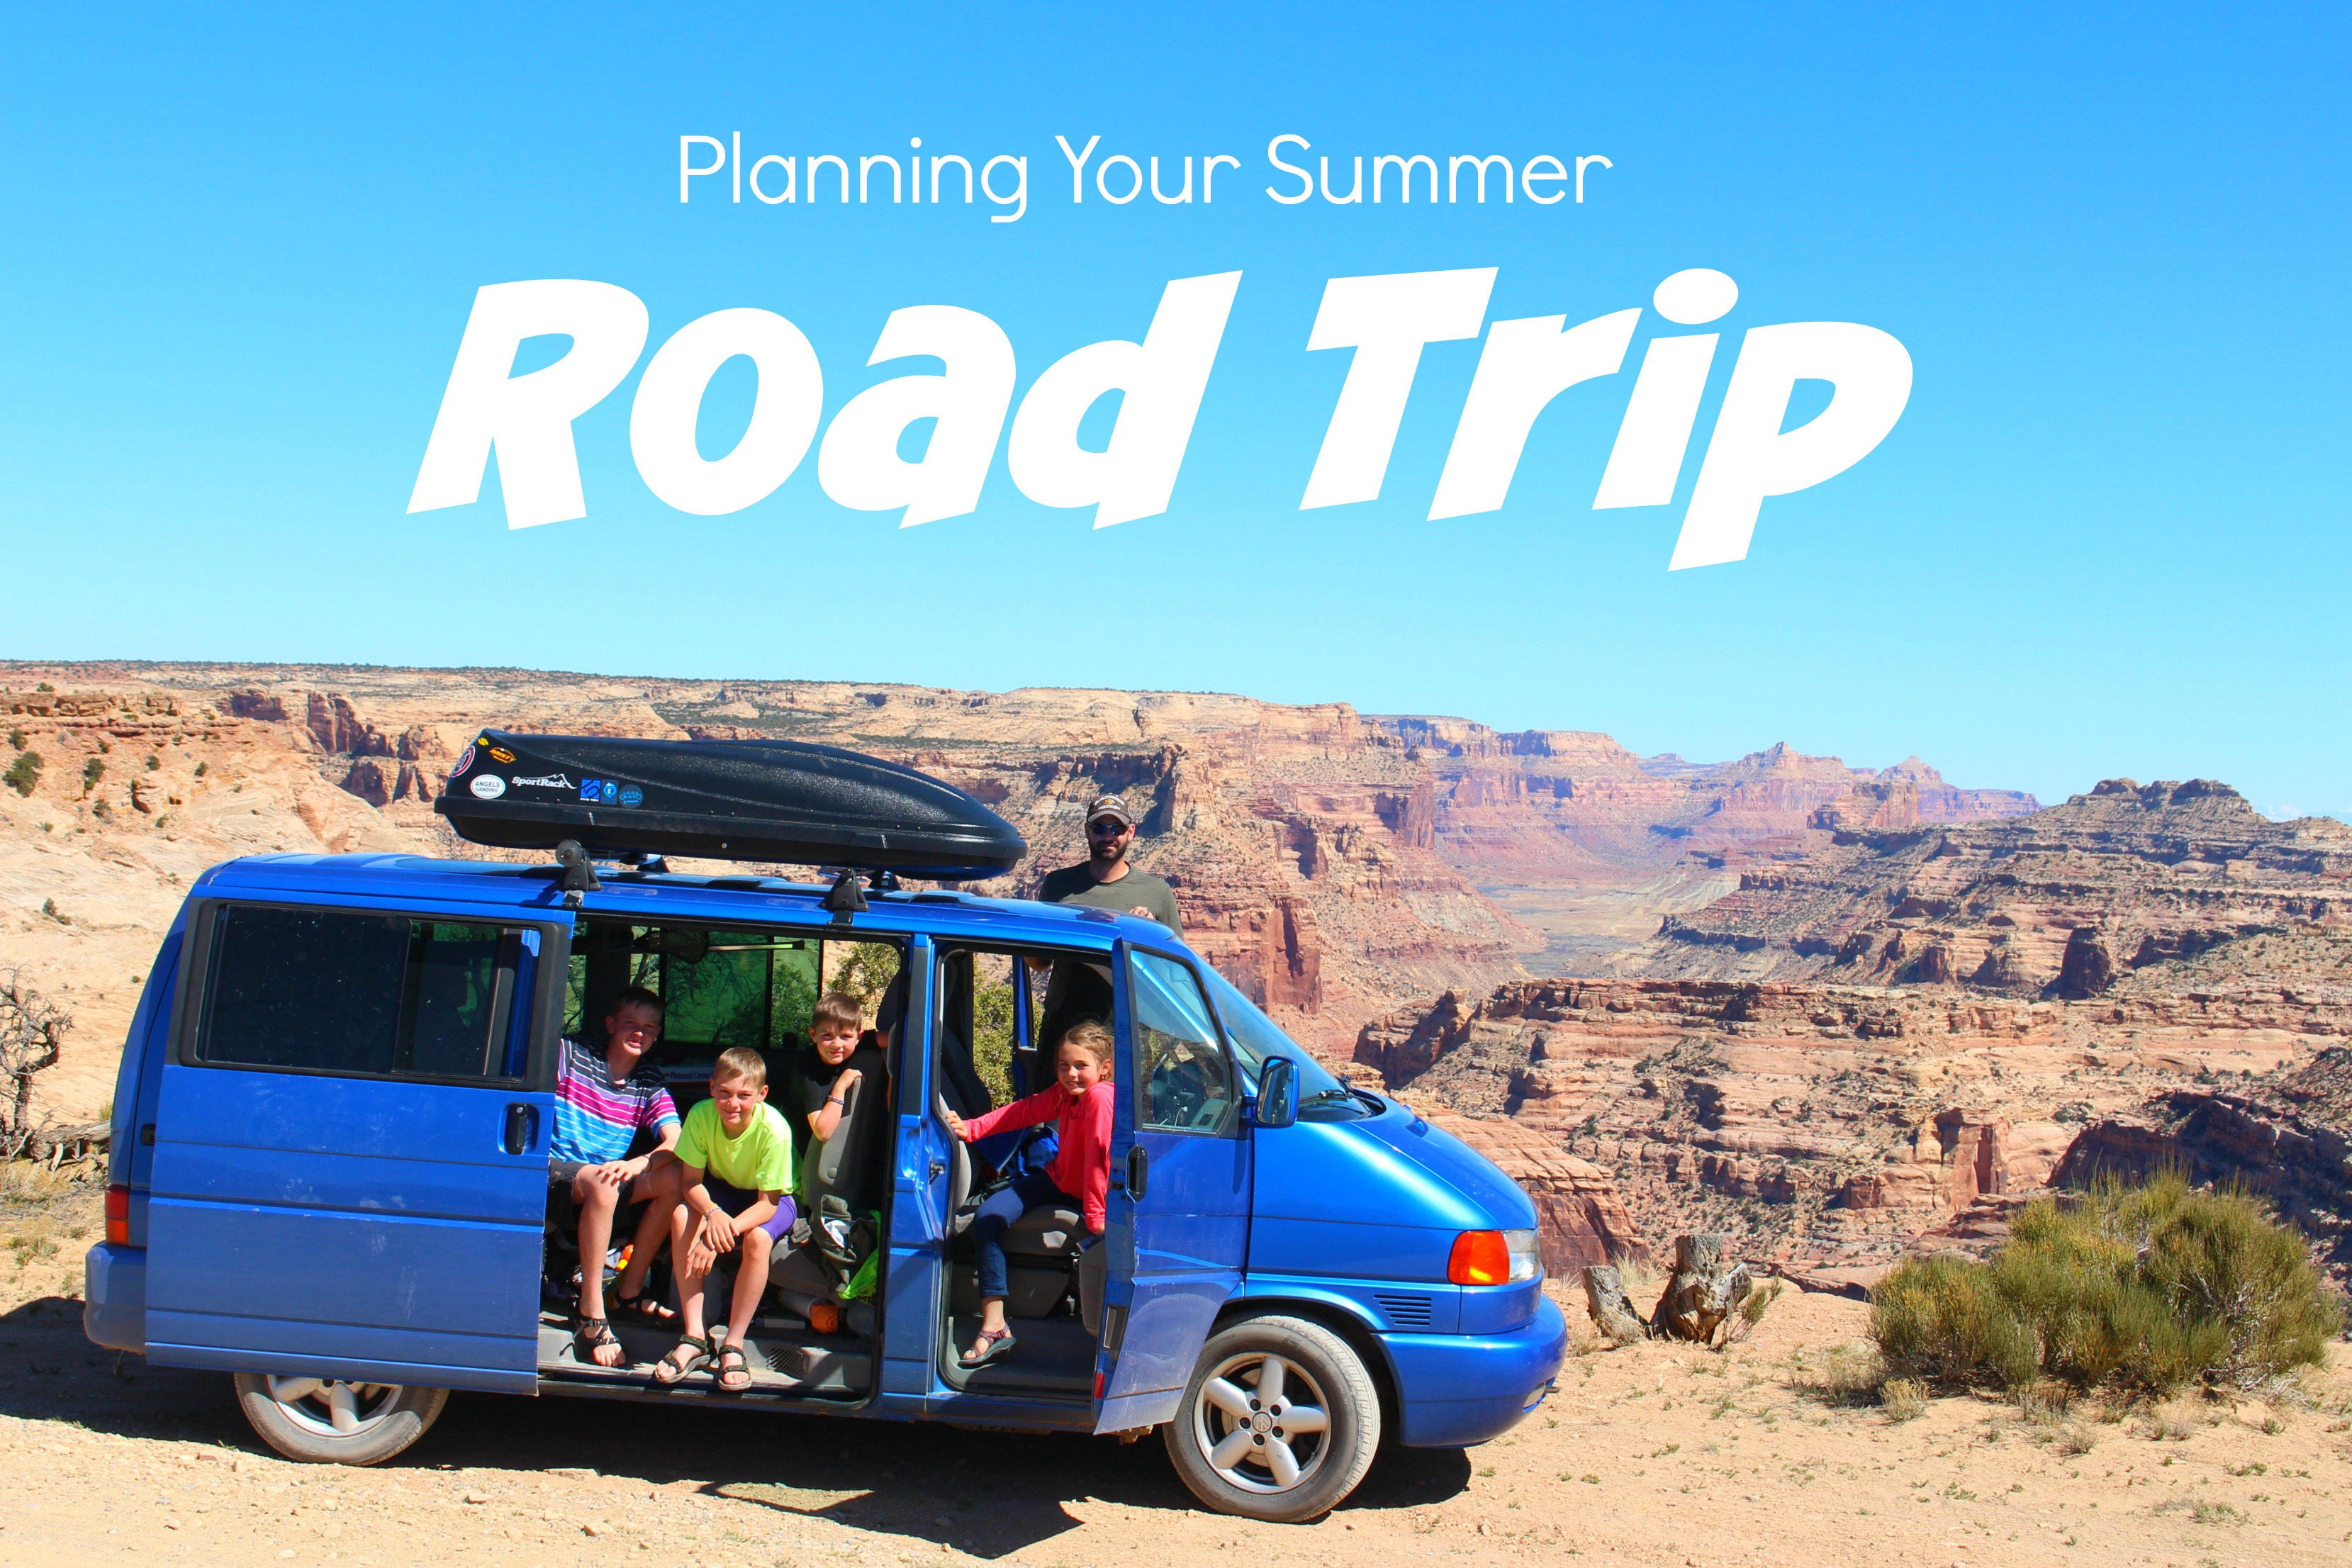 Planning Your Summer Road Trip National Geographic